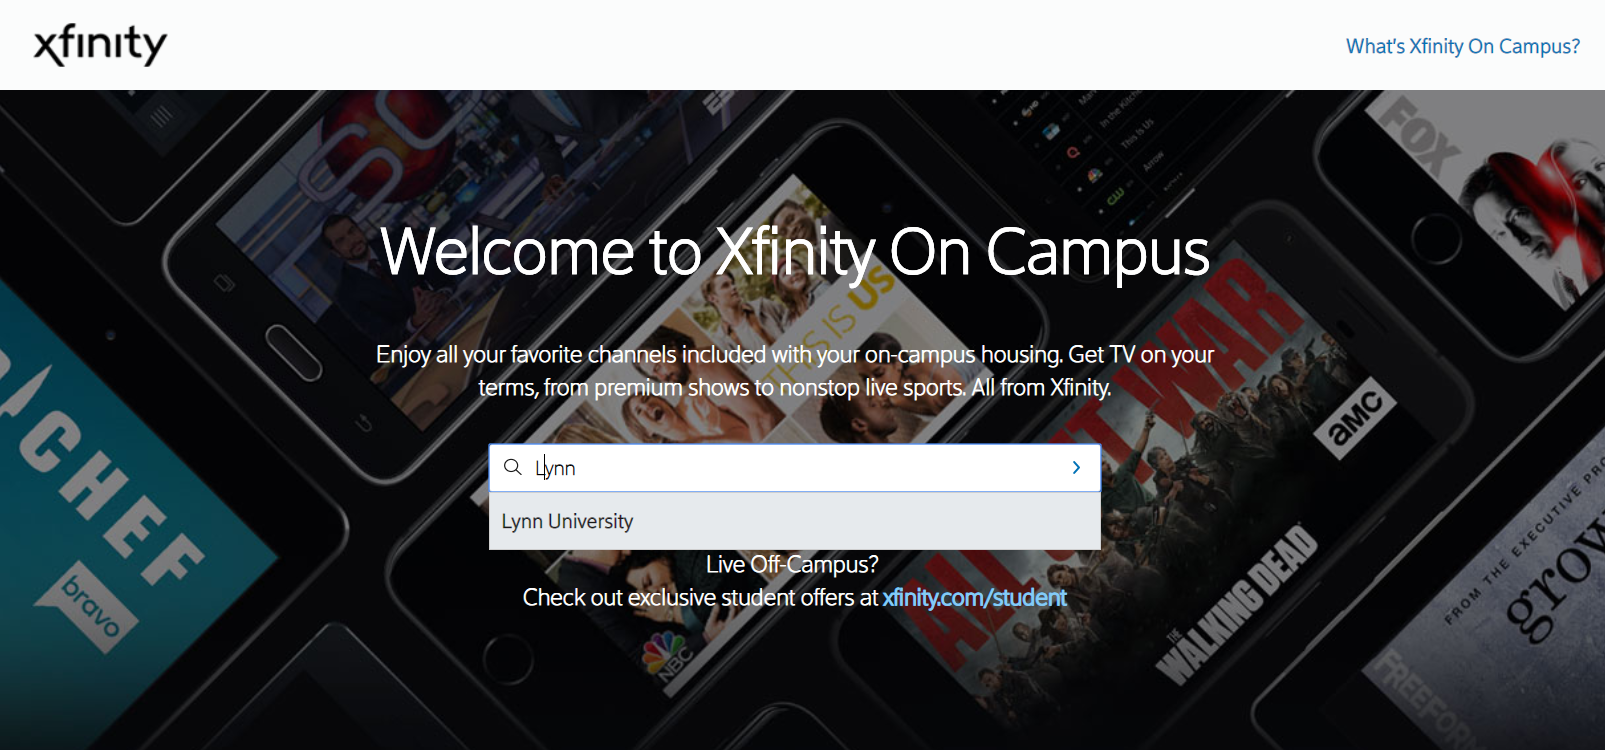 Xfinity institution search page